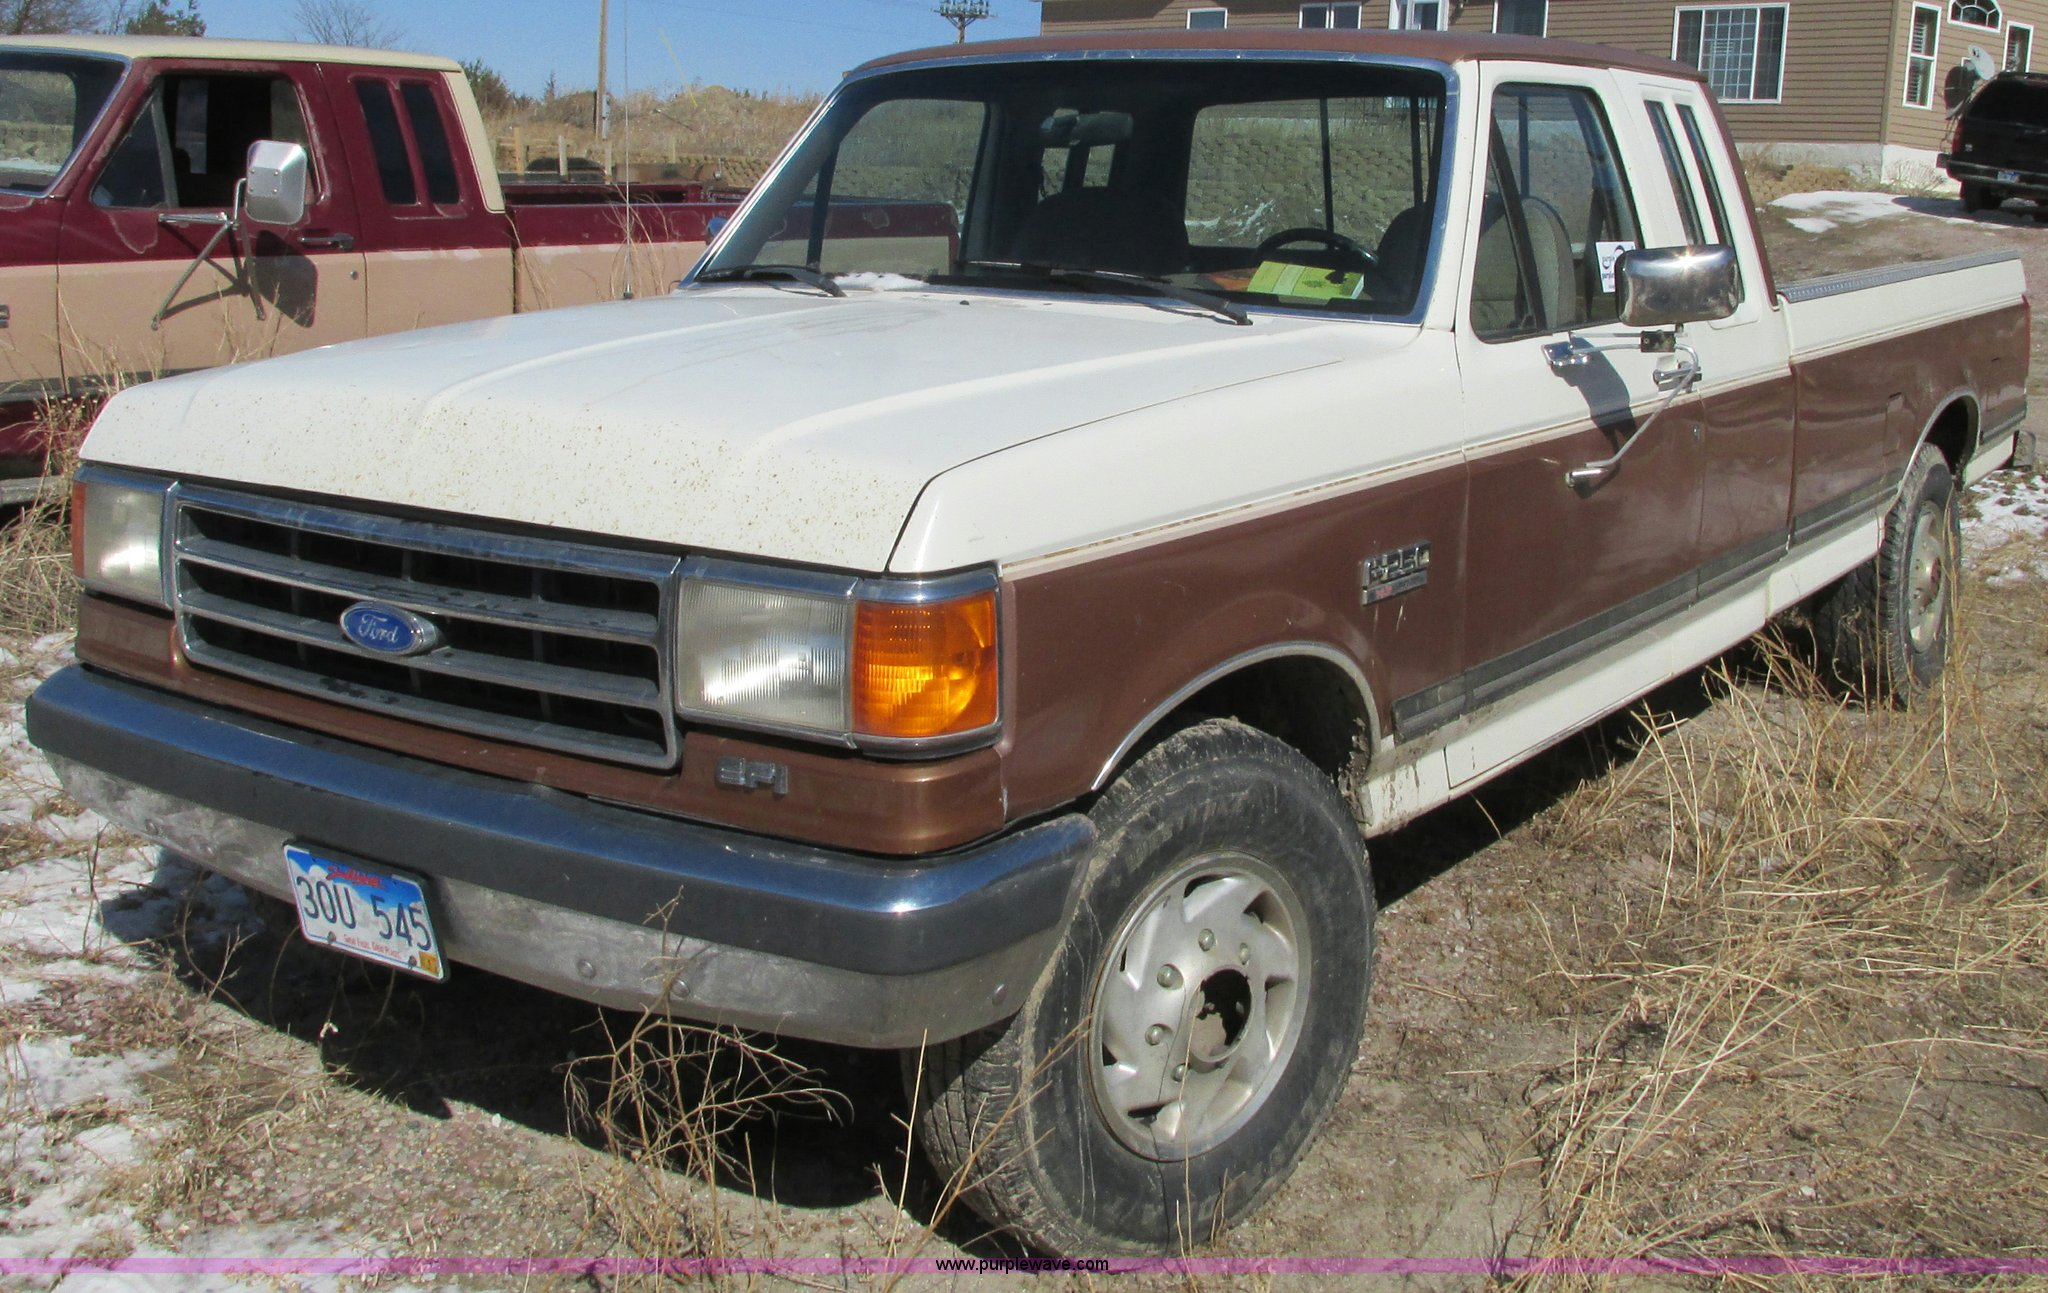 1990 Ford F250 Xlt Lariat Supercab Pickup Truck Item E5025 F 250 Transmission Wiring Image For